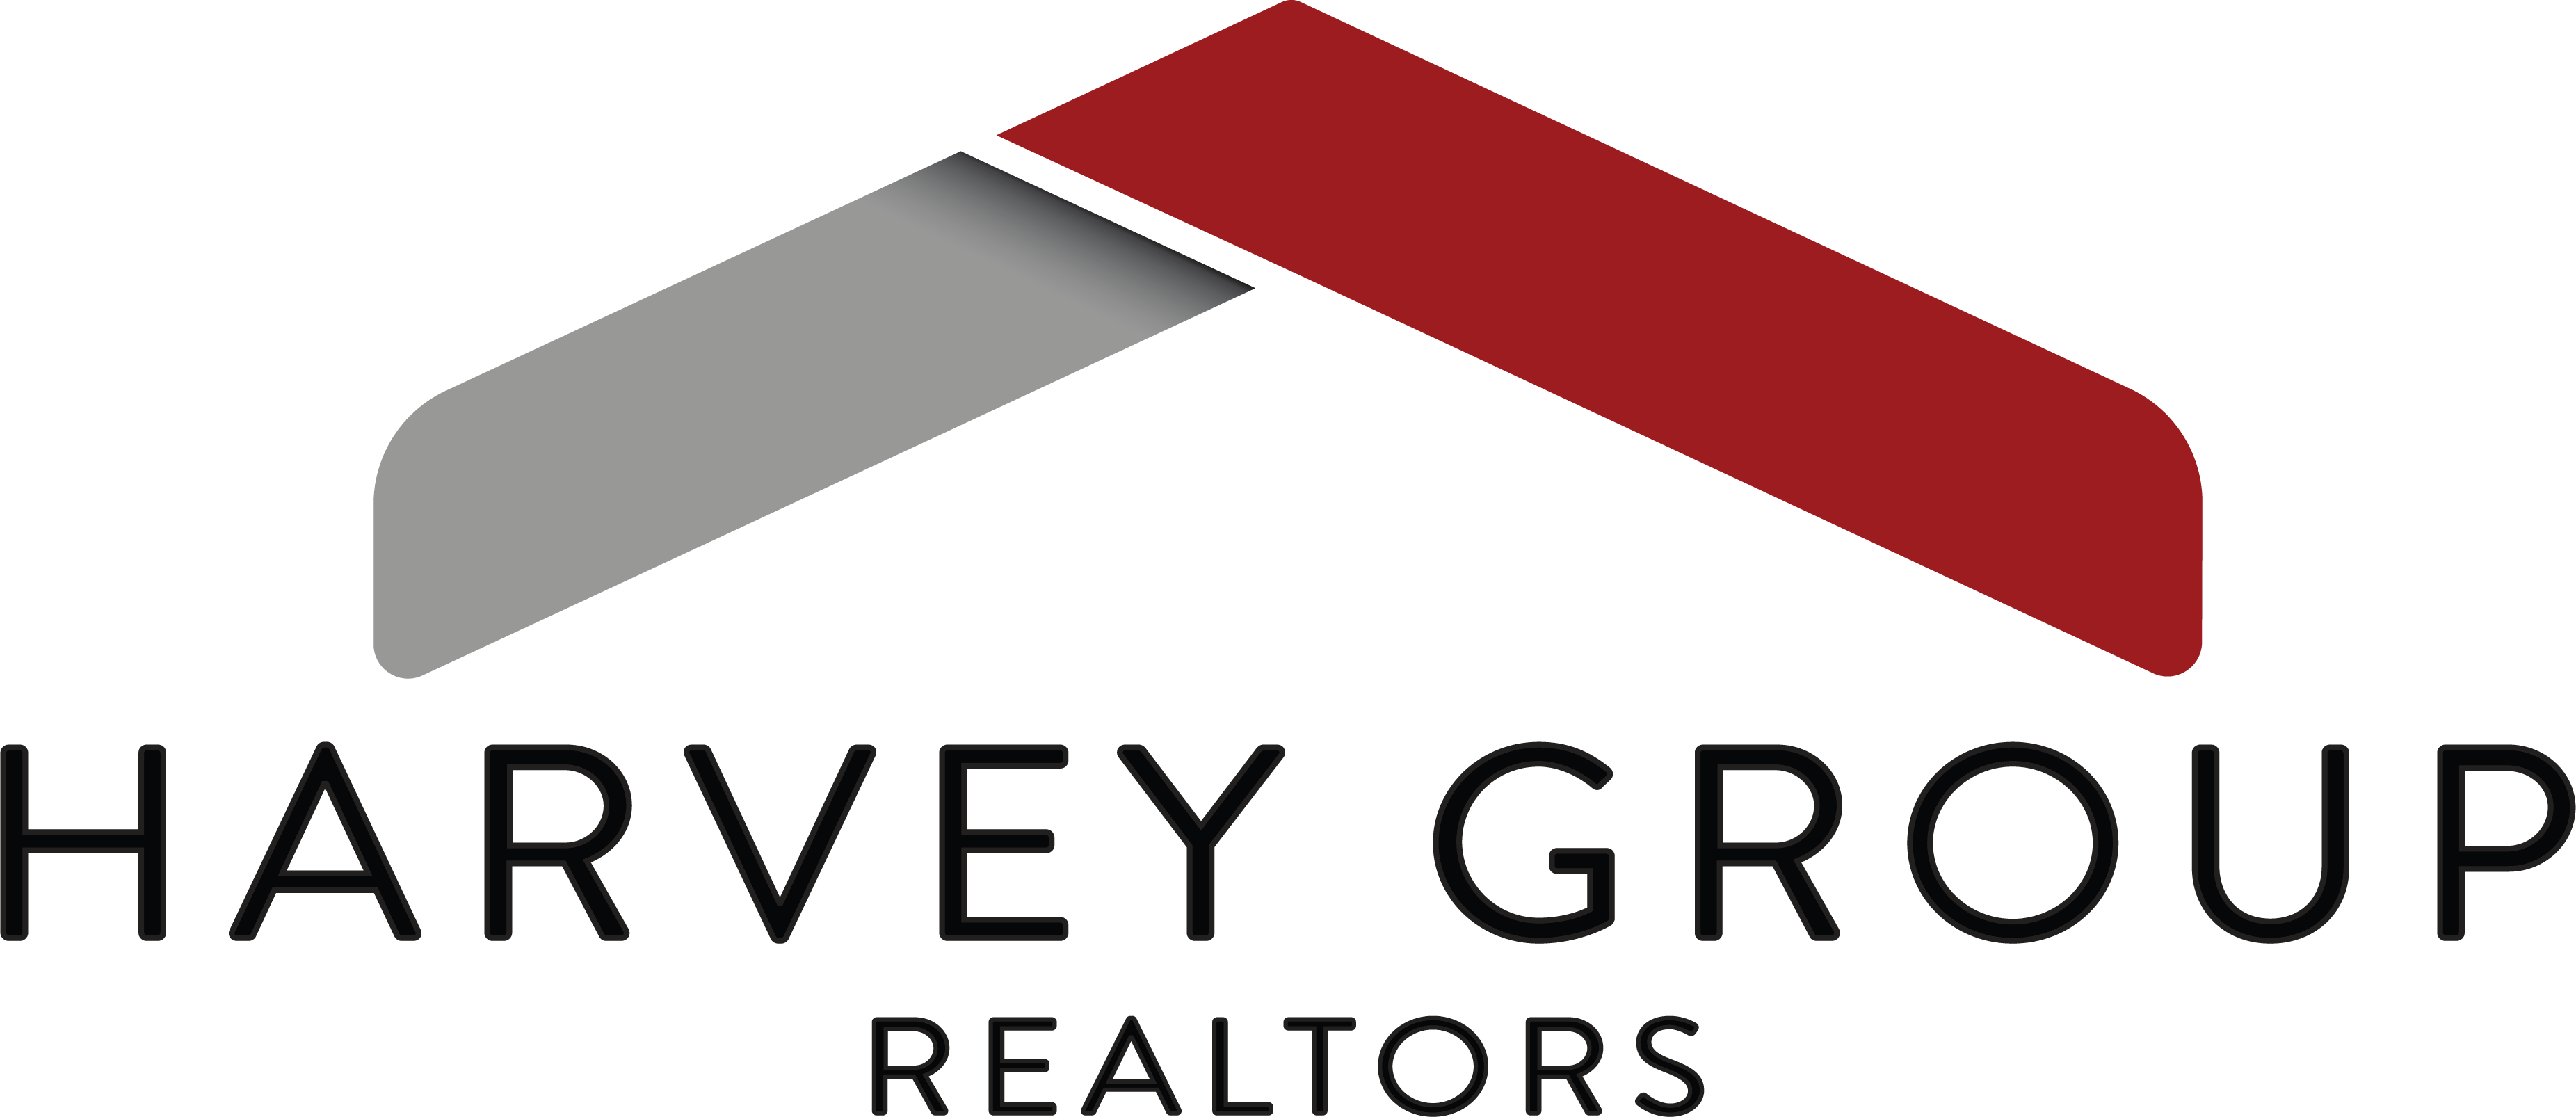 Harvey Group Realtors